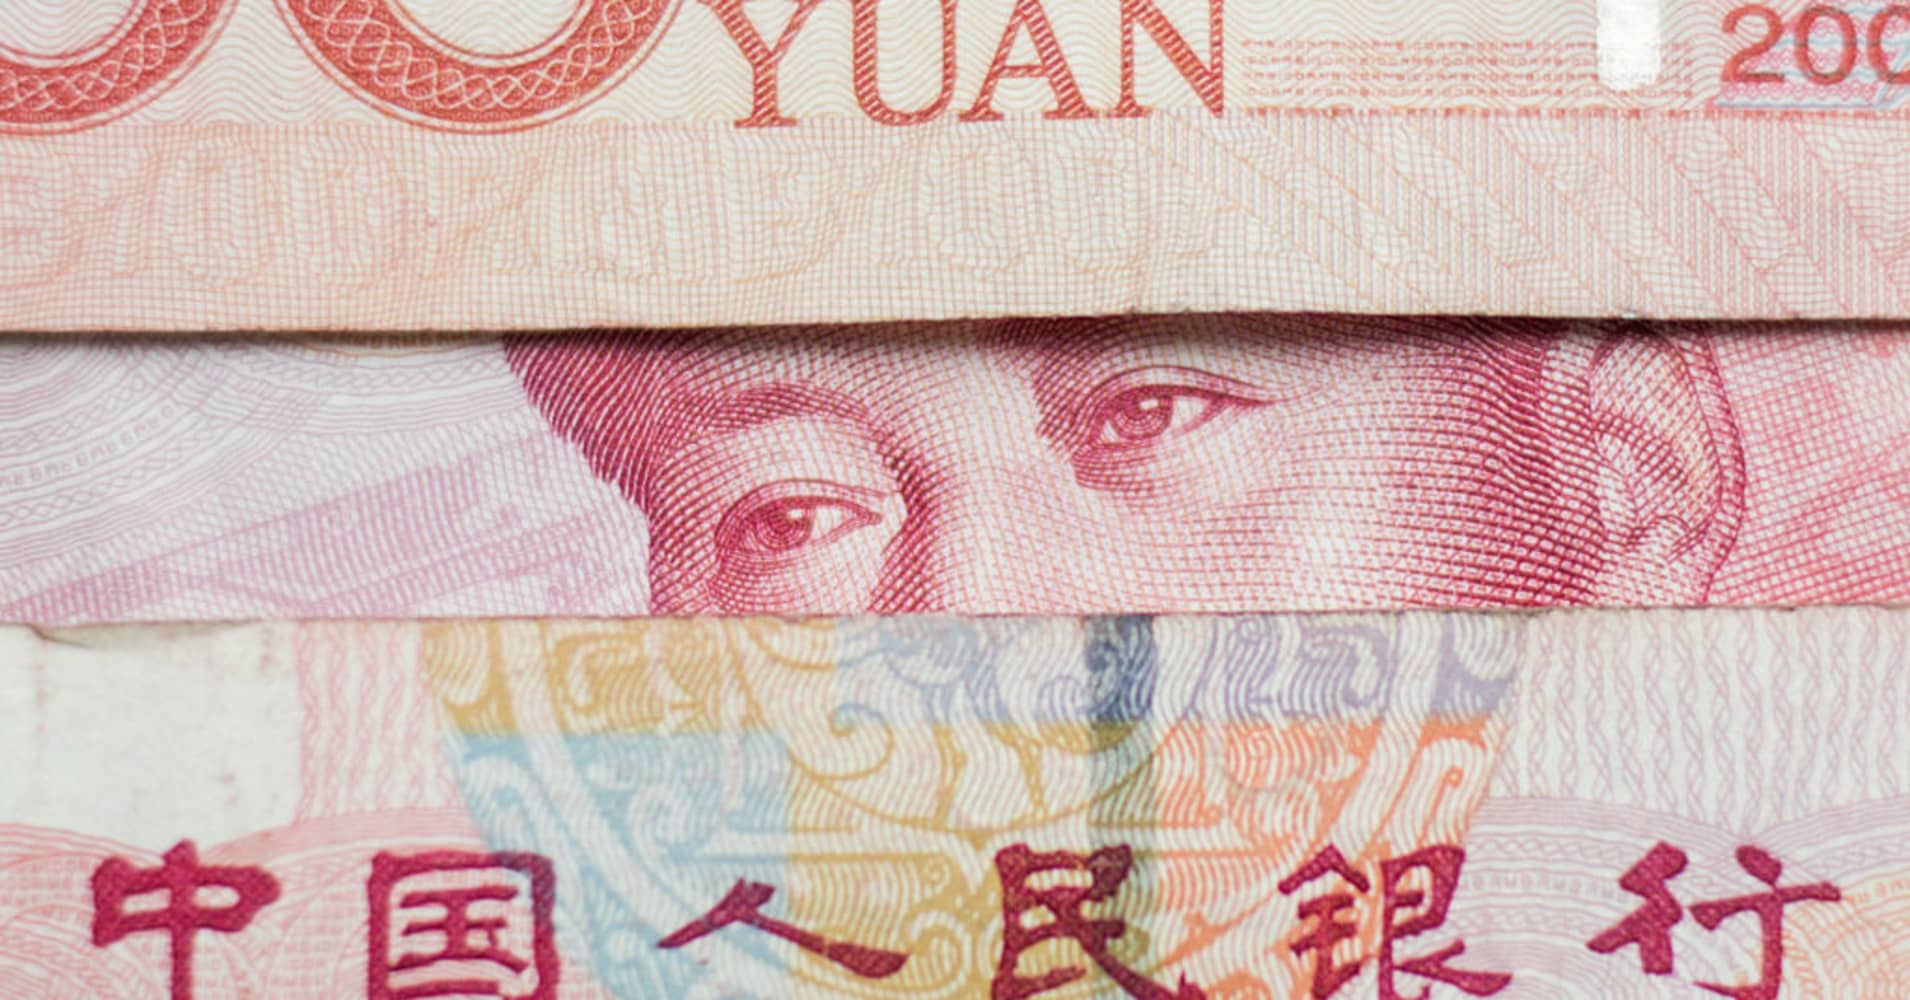 China foreign exchange reserves fall in December to lowest since February 2011